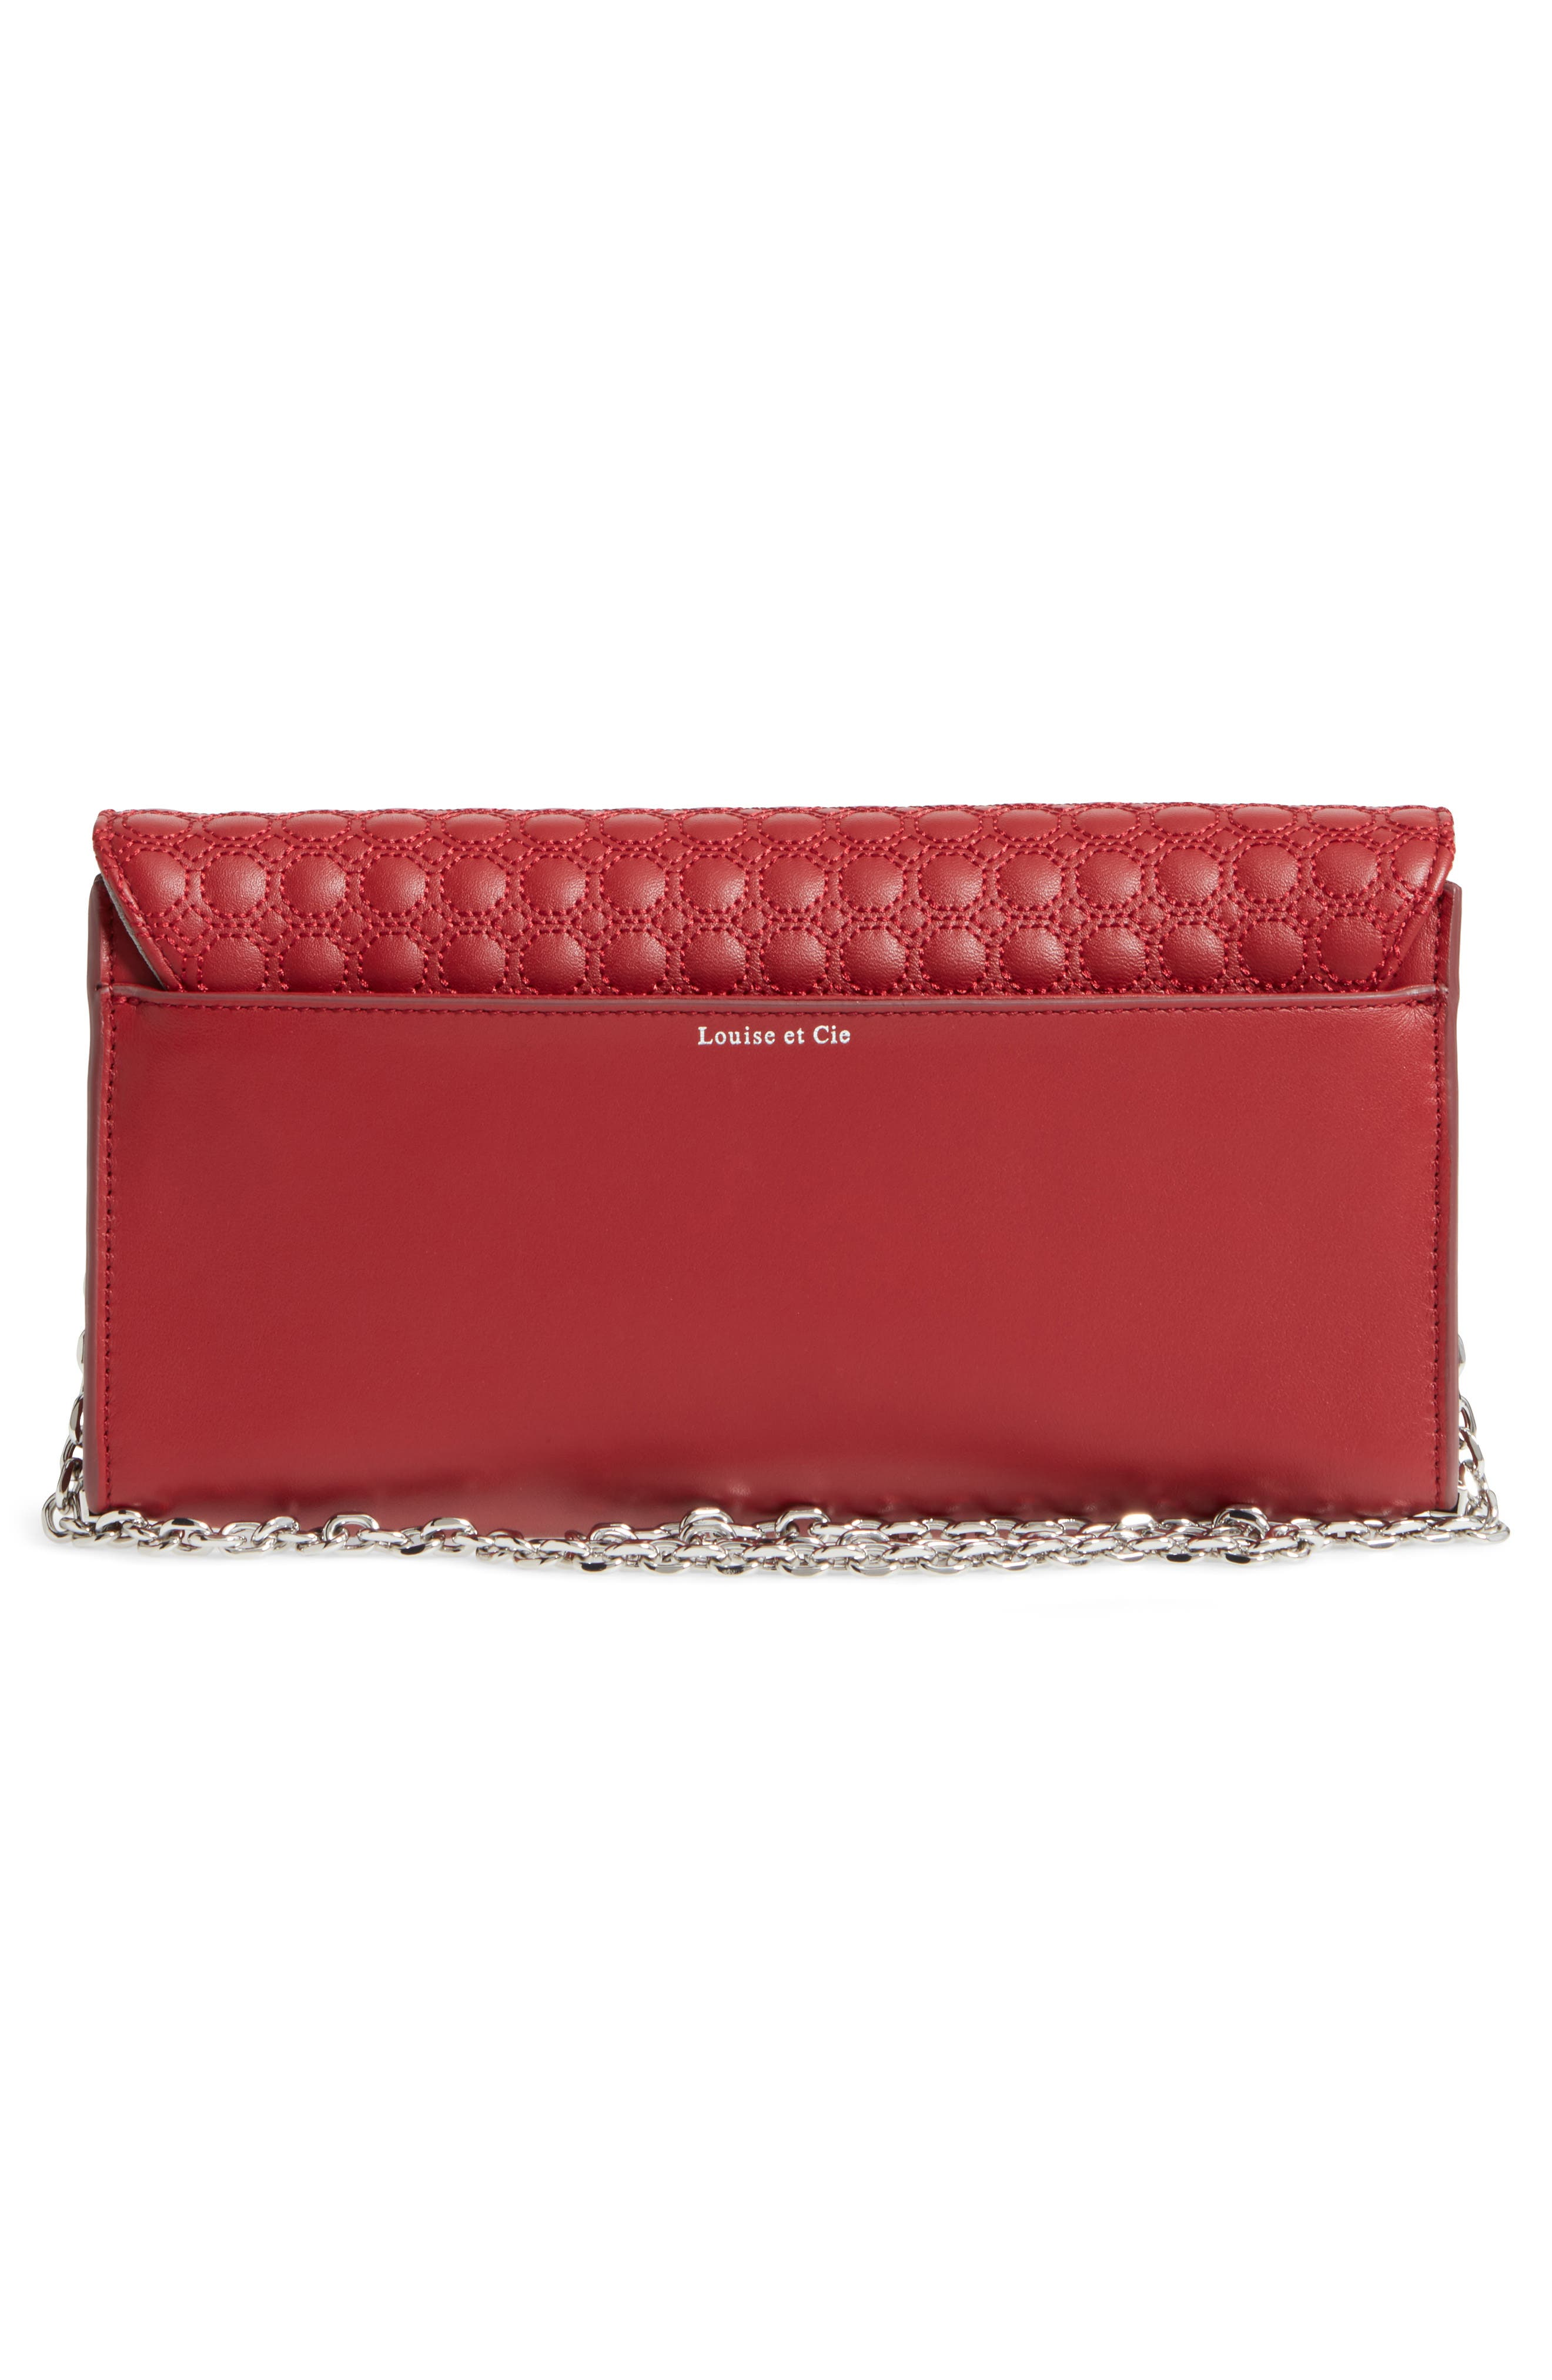 'Yvet' Leather Flap Clutch,                             Alternate thumbnail 3, color,                             Cherry Red